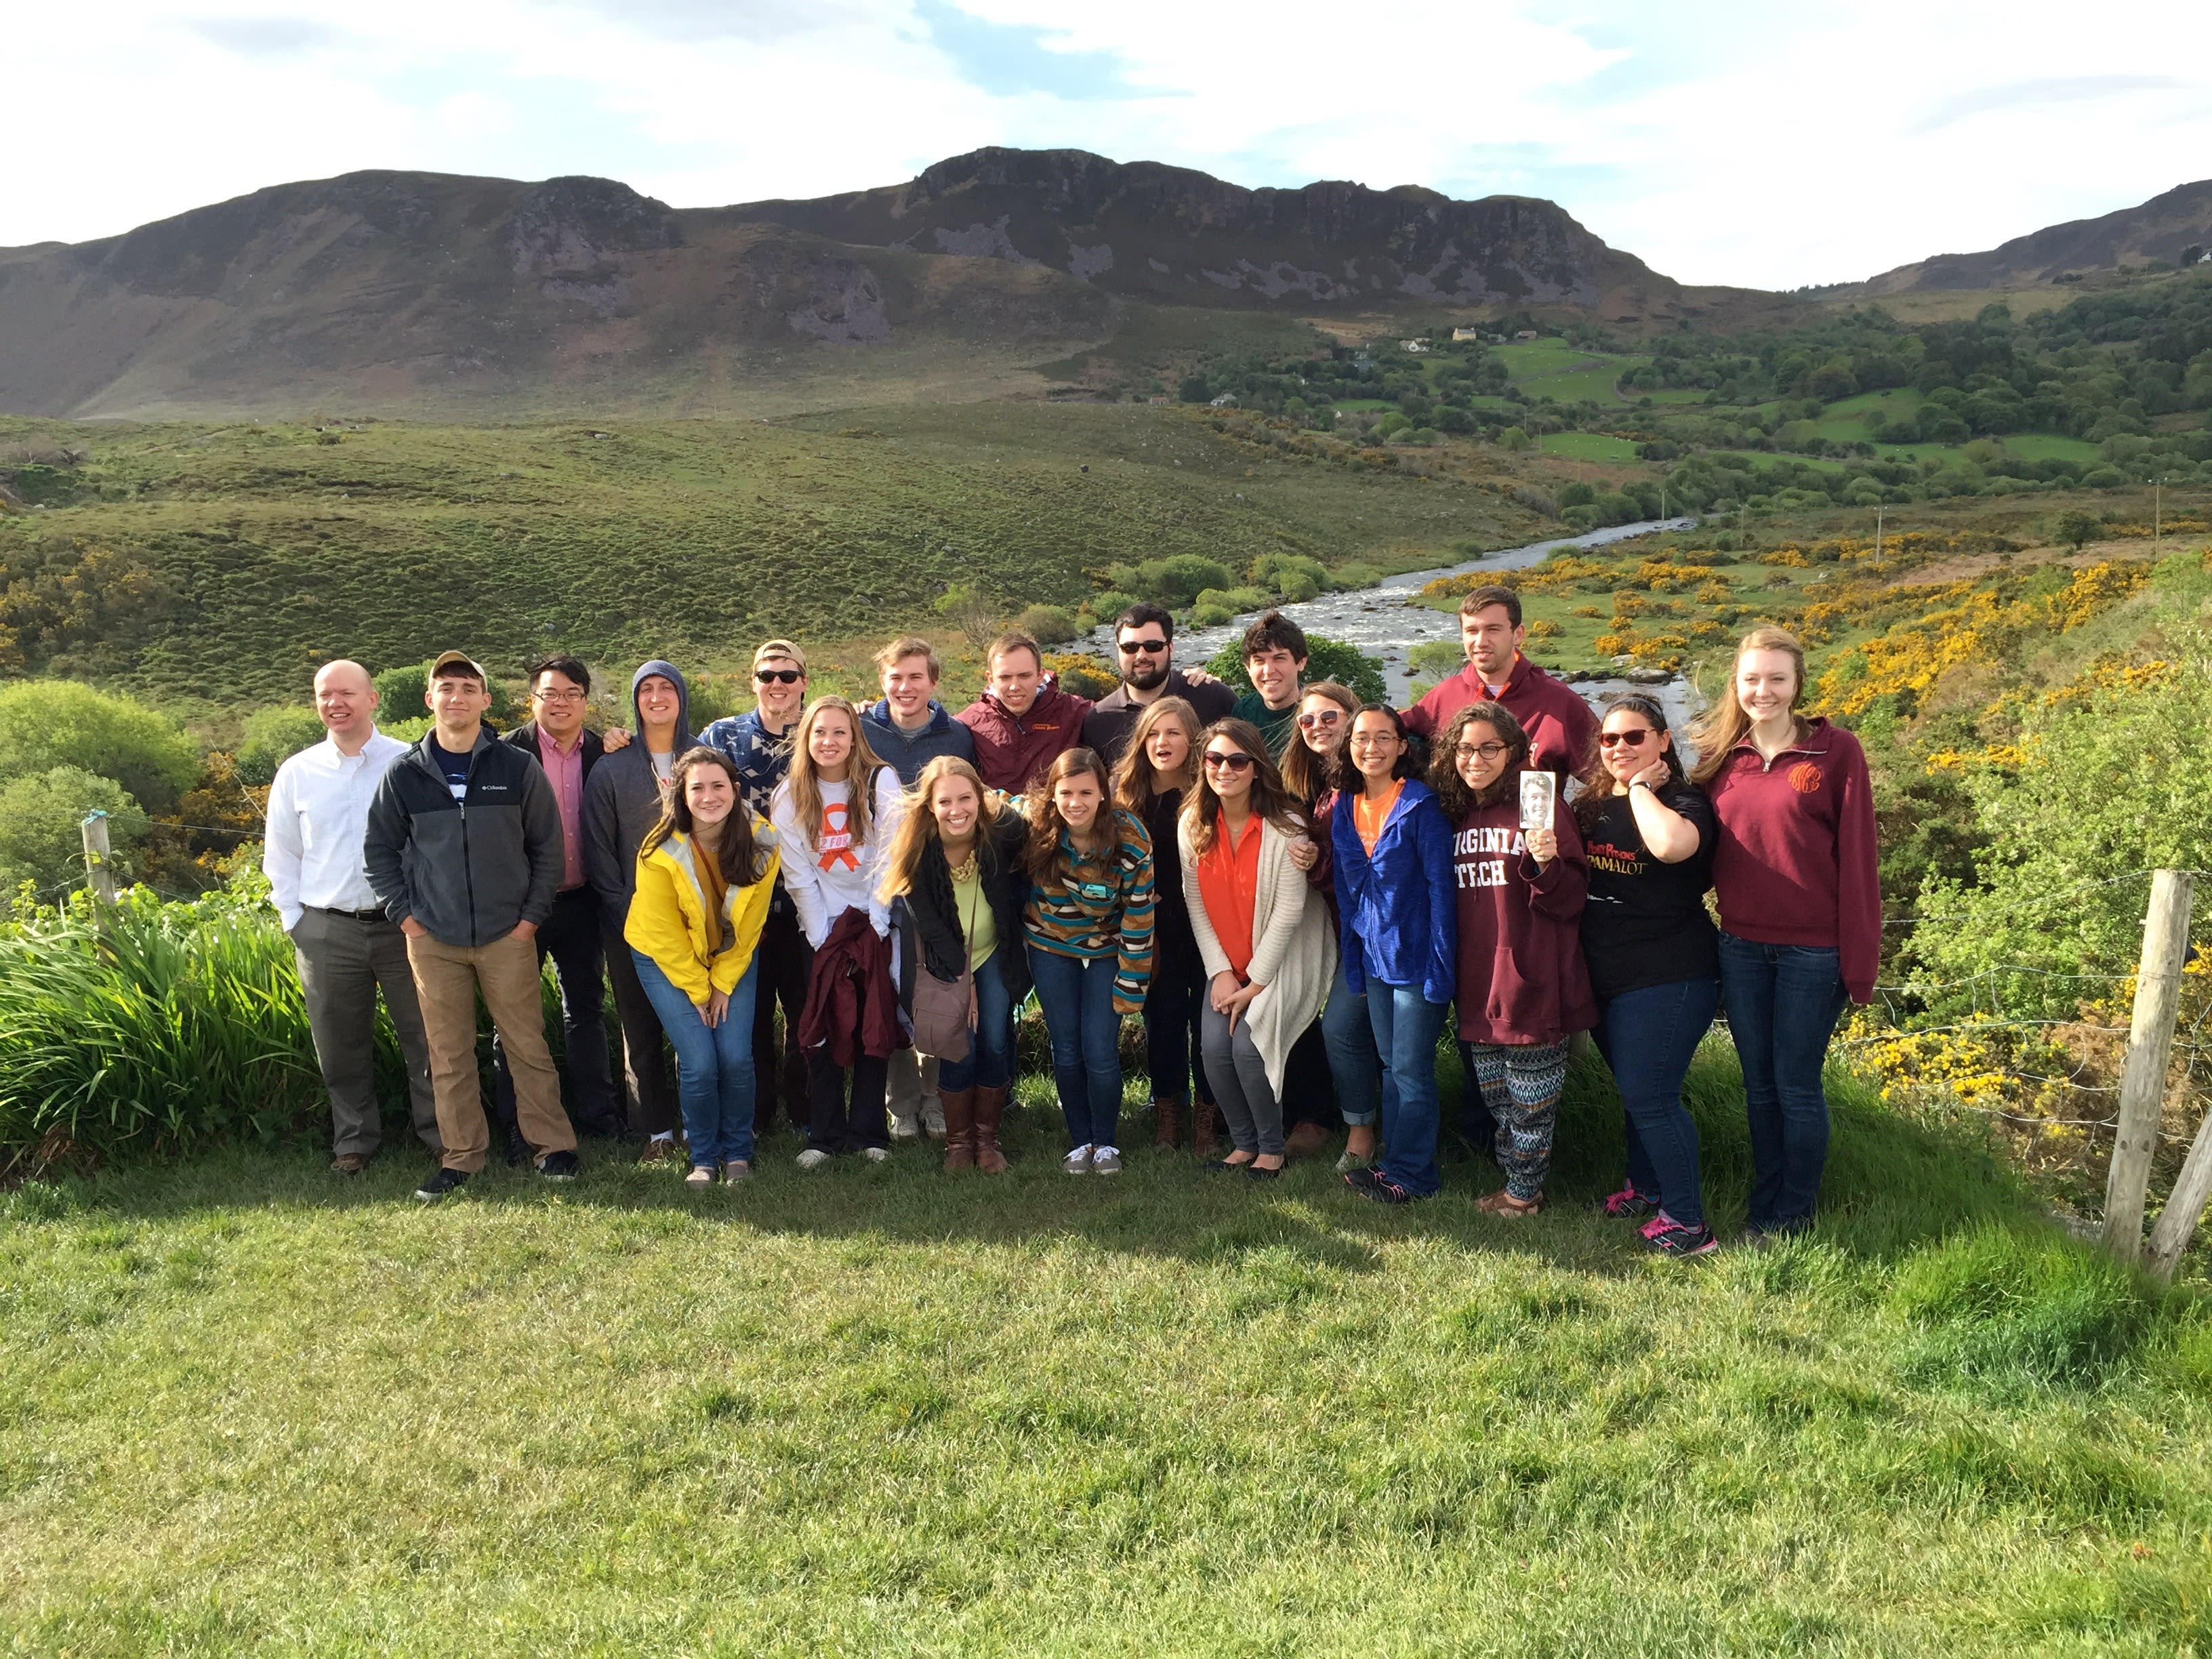 VT Chamber Singers in Ireland